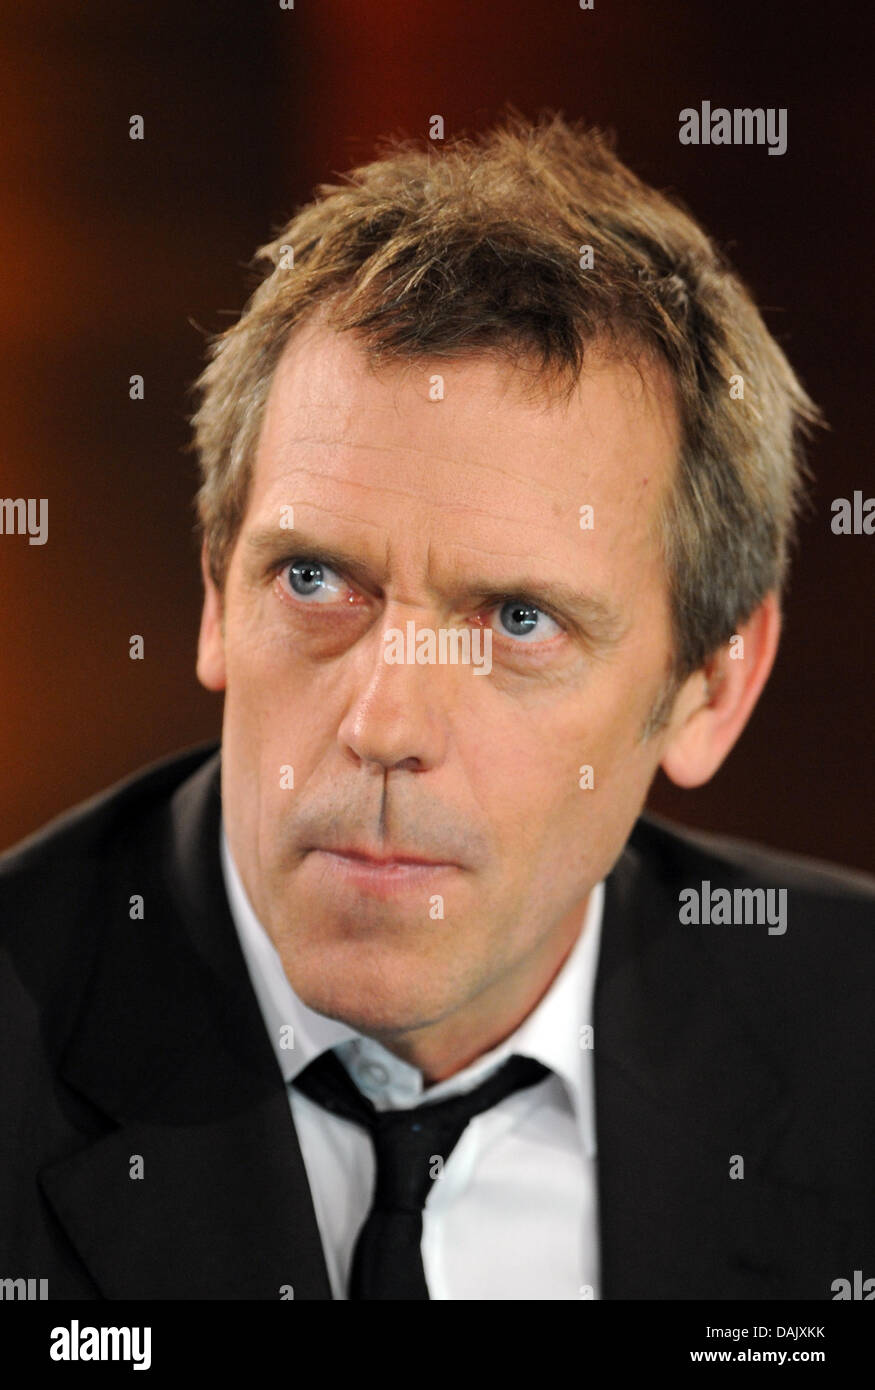 British actor and musician Hugh Laurie sits on the sofa during the ZDF German television show 'Wetten, dass...?' - Stock Image